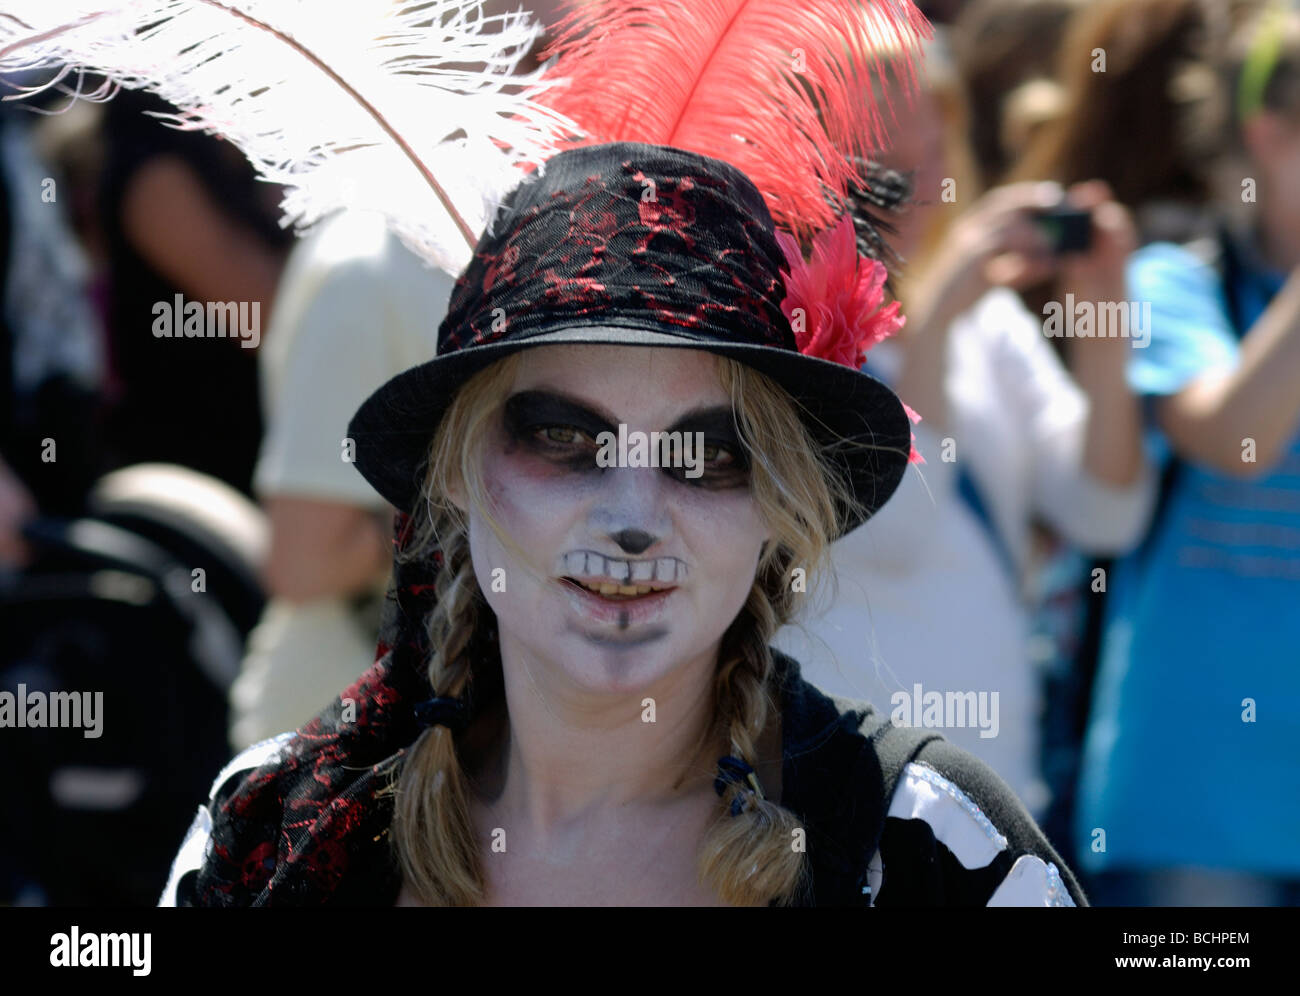 Girl in goth facepaint face paint and feathered hat in street parade - Stock Image